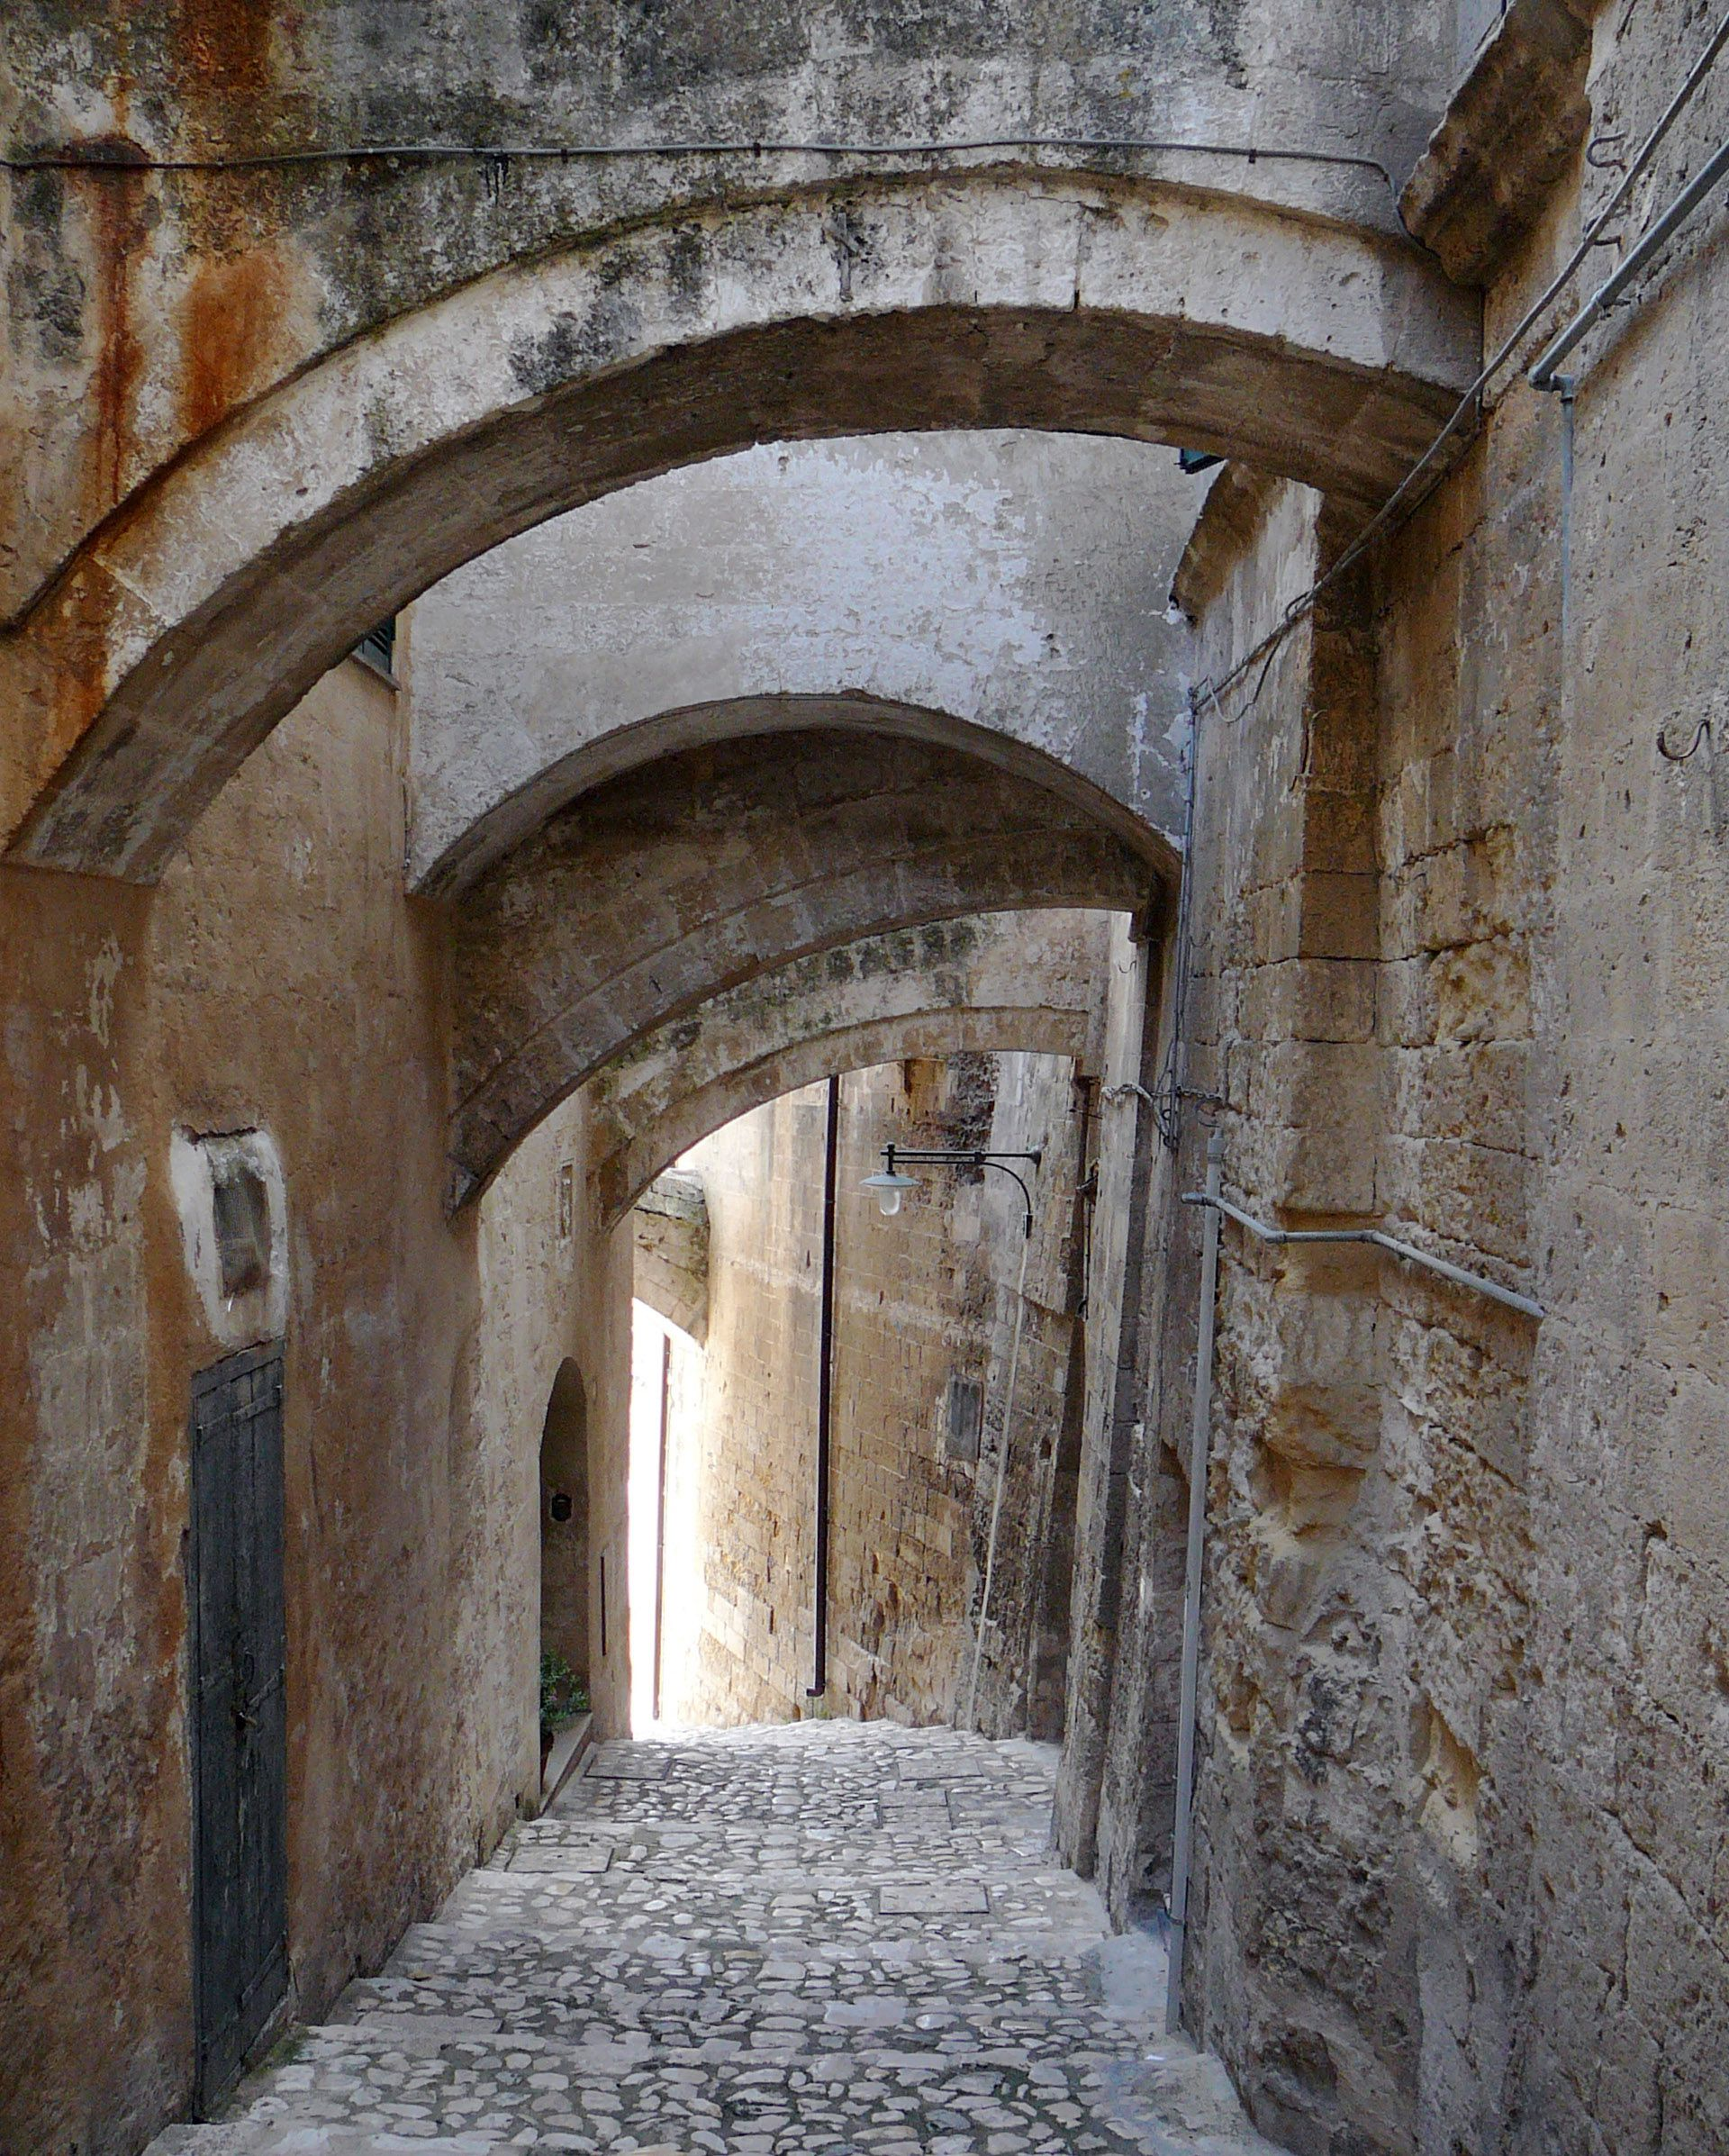 It takes centuries for such #patina to emerge: saluting #Tuscany (via TuscanTraveler.com).